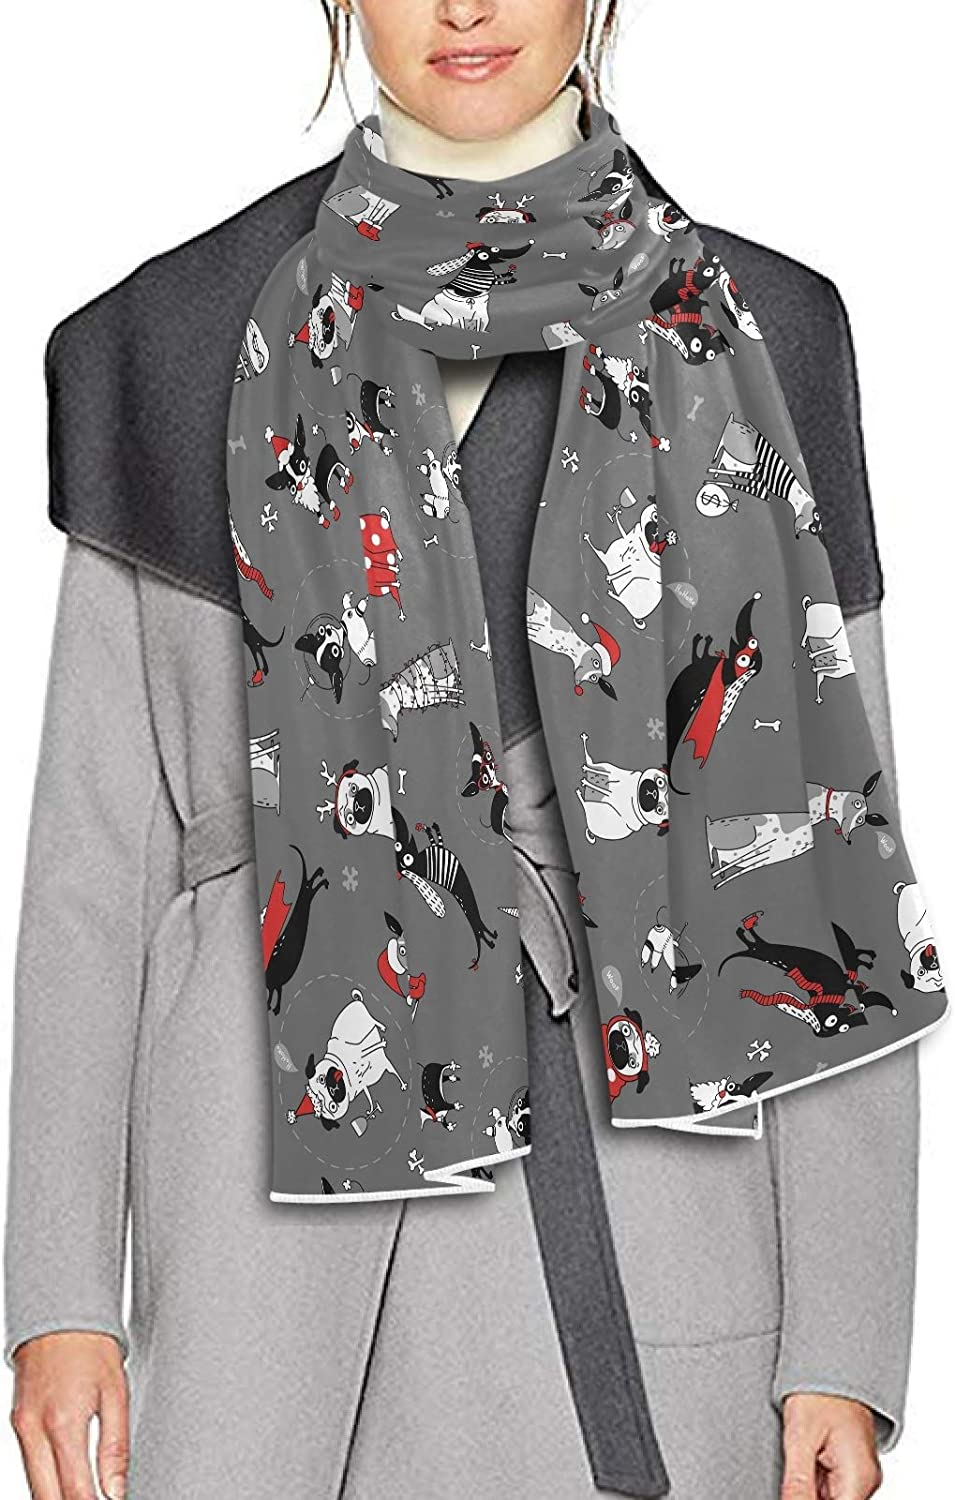 Scarf for Women and Men Funny Christmas Dogs Blanket Shawl Scarves Wraps Soft Winter Large Scarves Lightweight